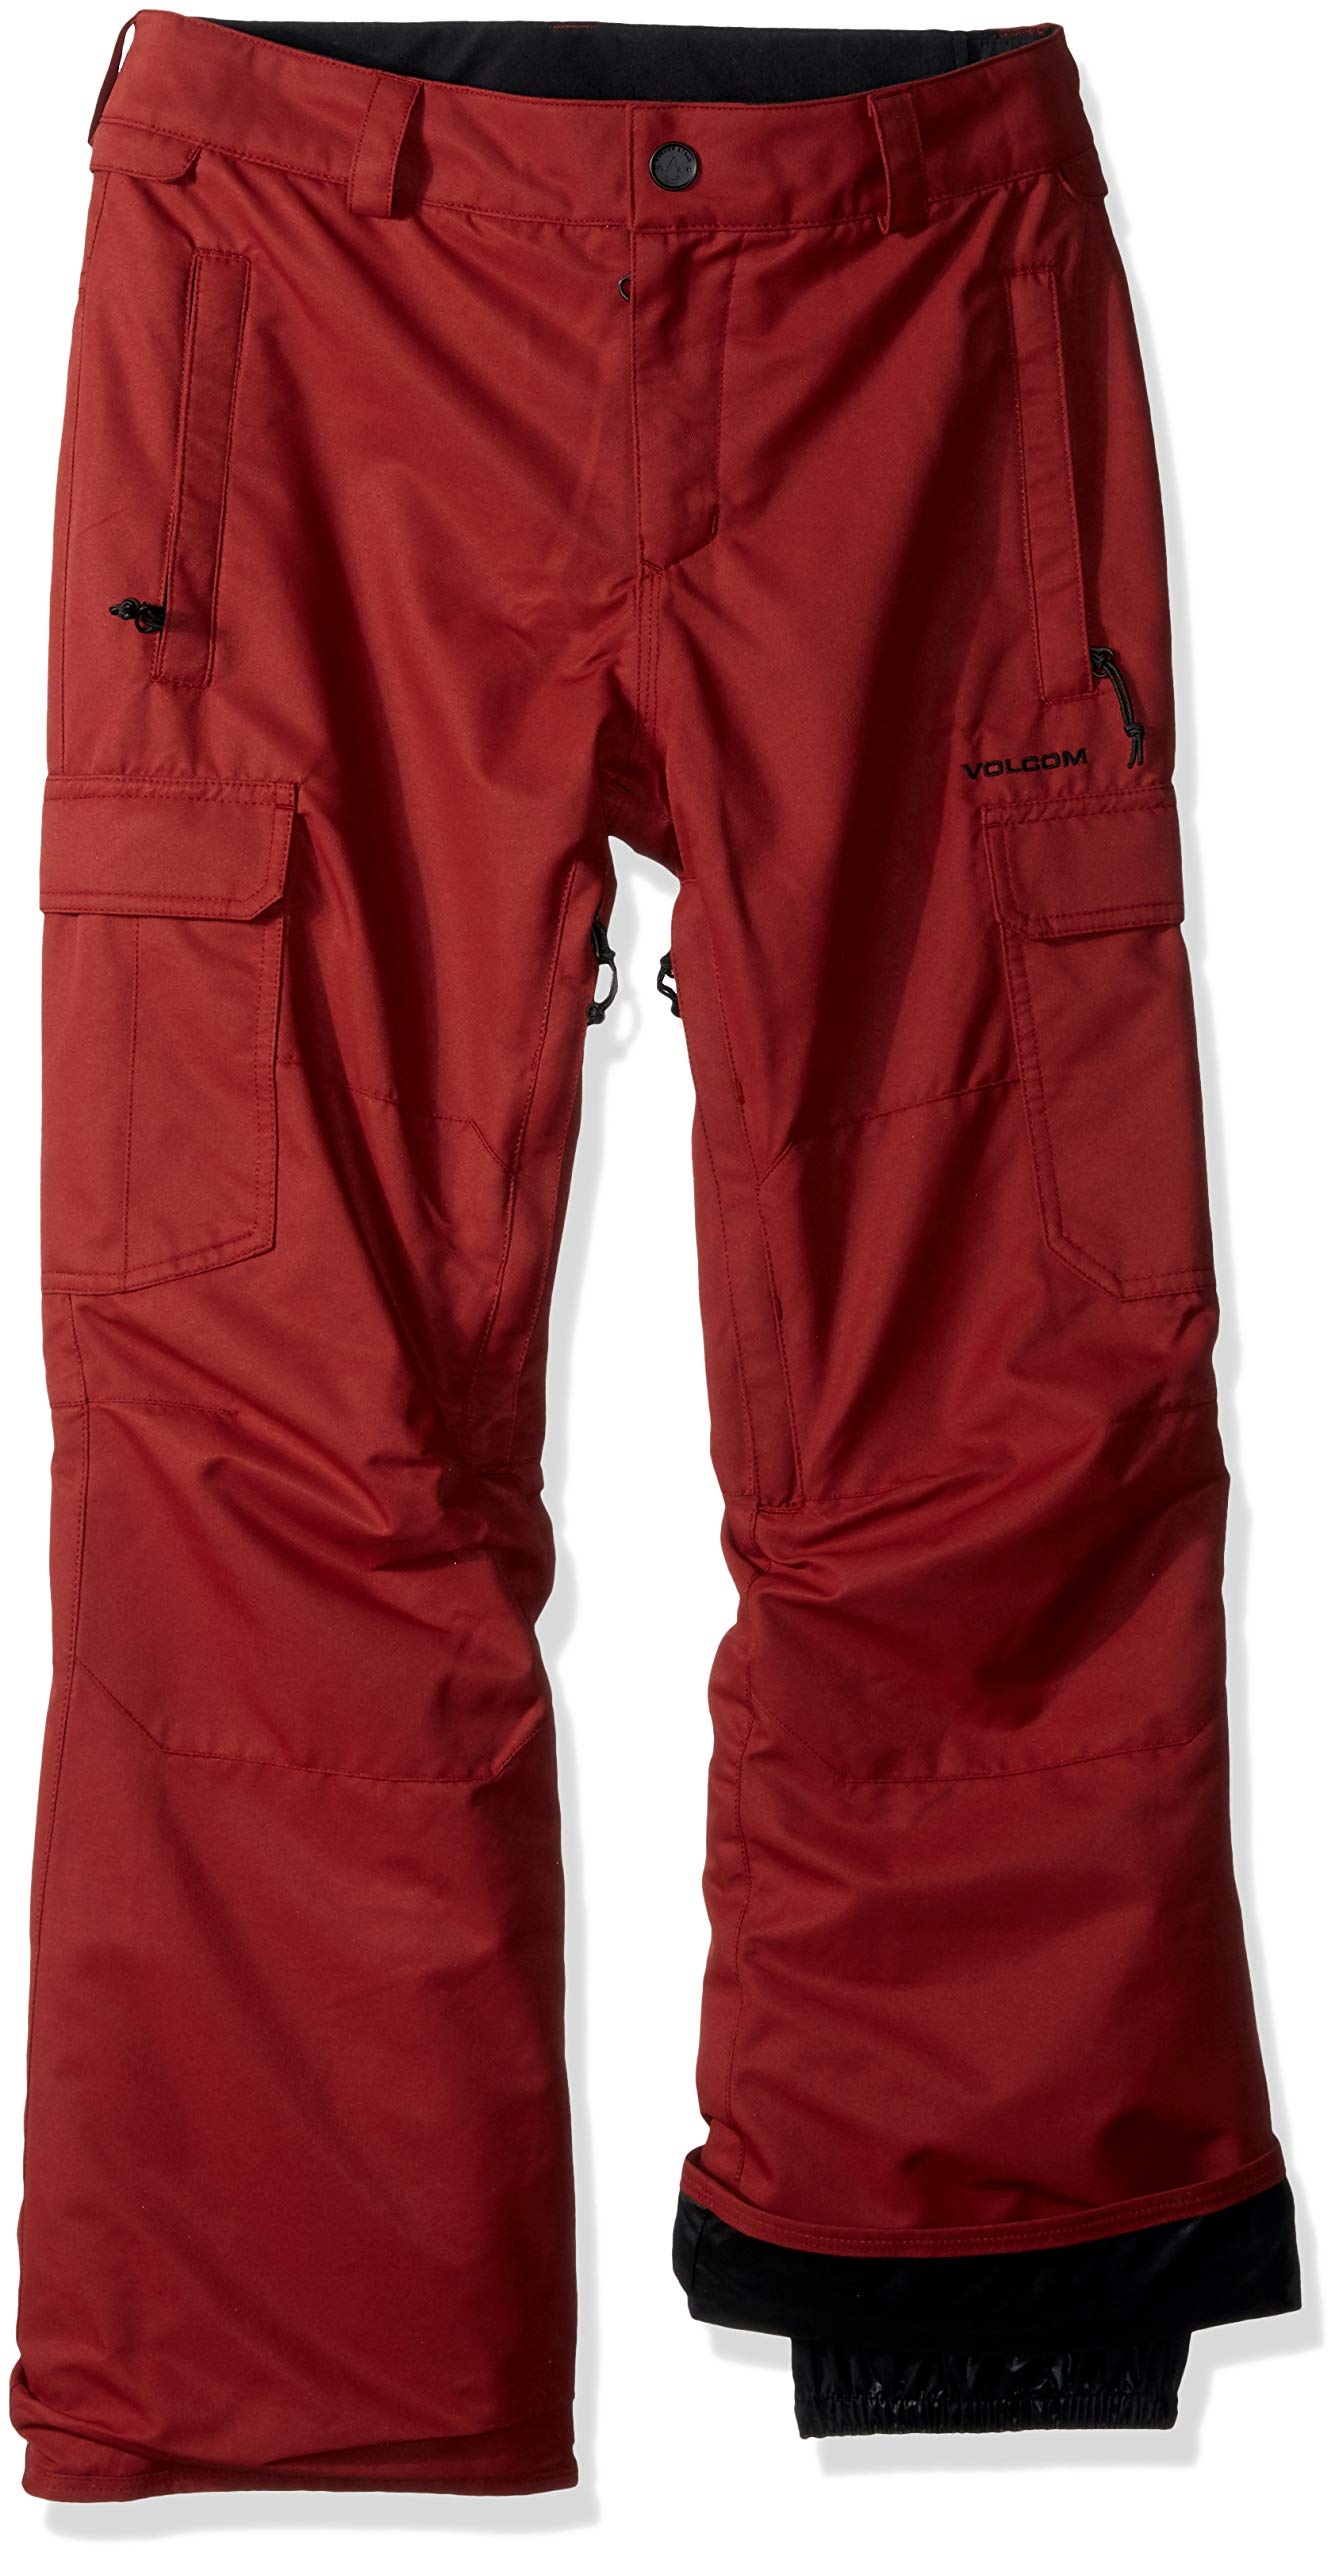 Volcom Boys' Big Cargo Insulated 2 Layer Shell Snow Pant, Burnt red, Extra Small by Volcom